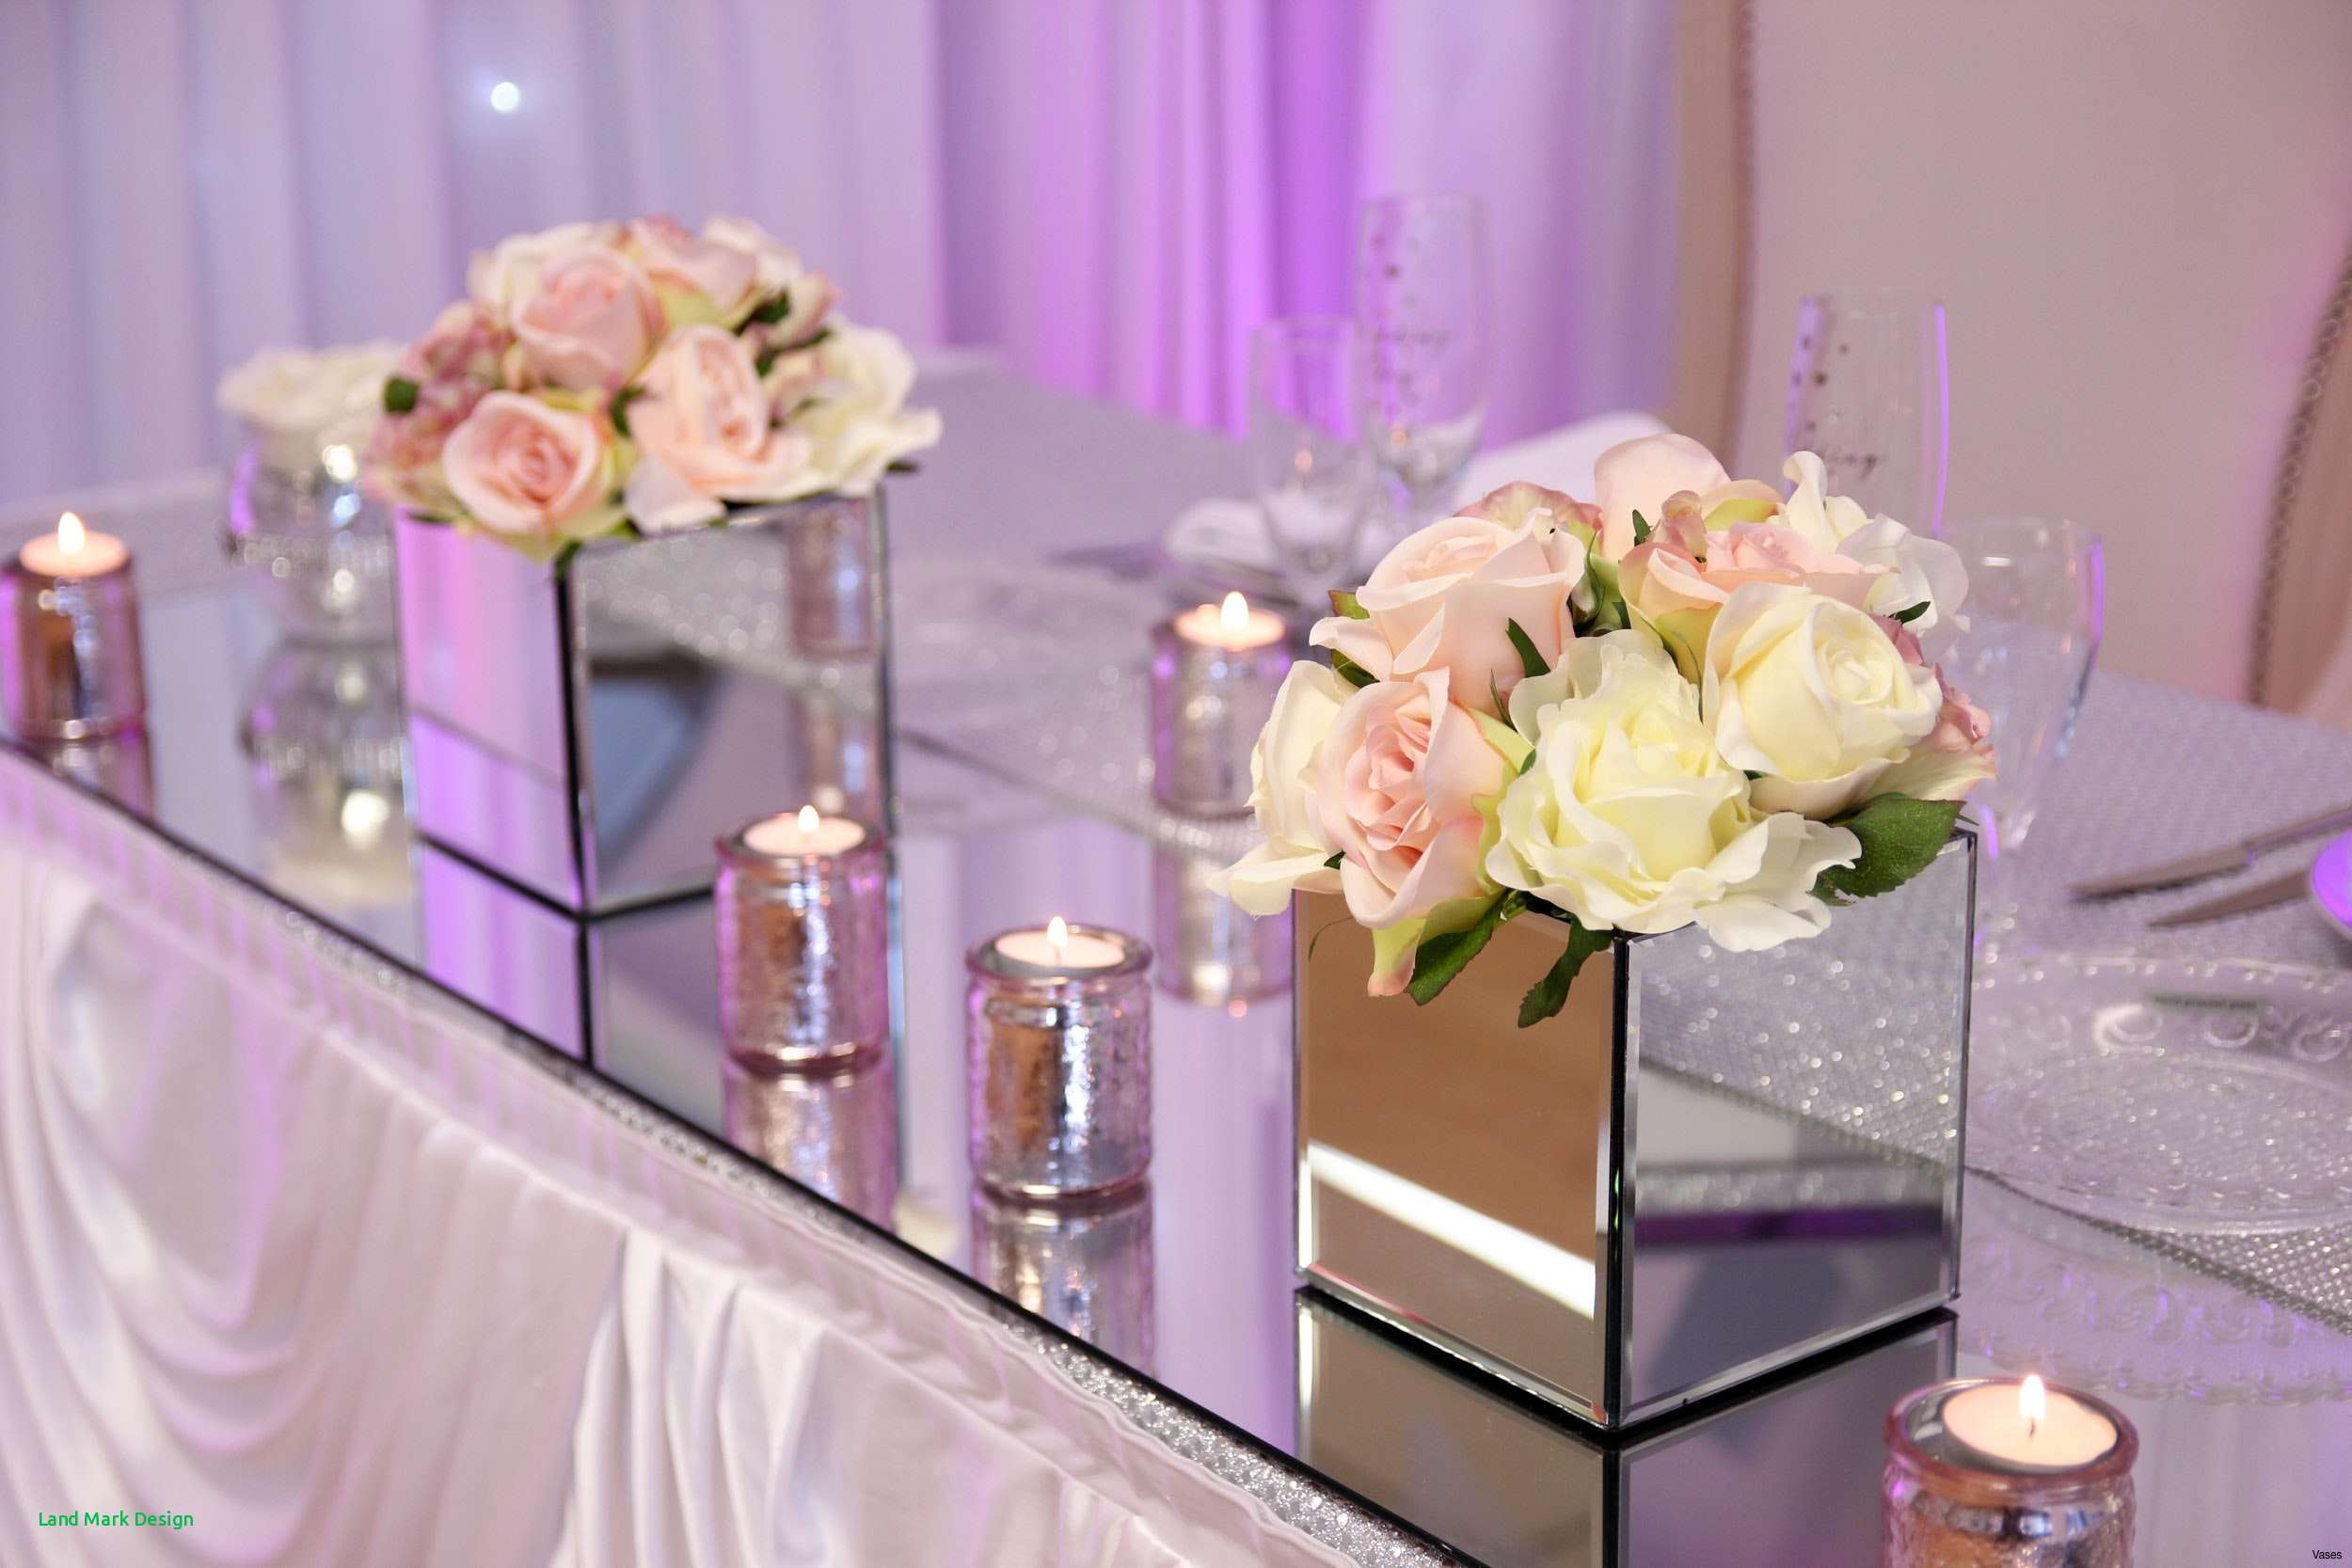 japanese vases for sale of table decoration for wedding home decor home design in mirrored square vase 3h vases mirror weddings table decorationi 0d crystal wedding centerpieces candelabra